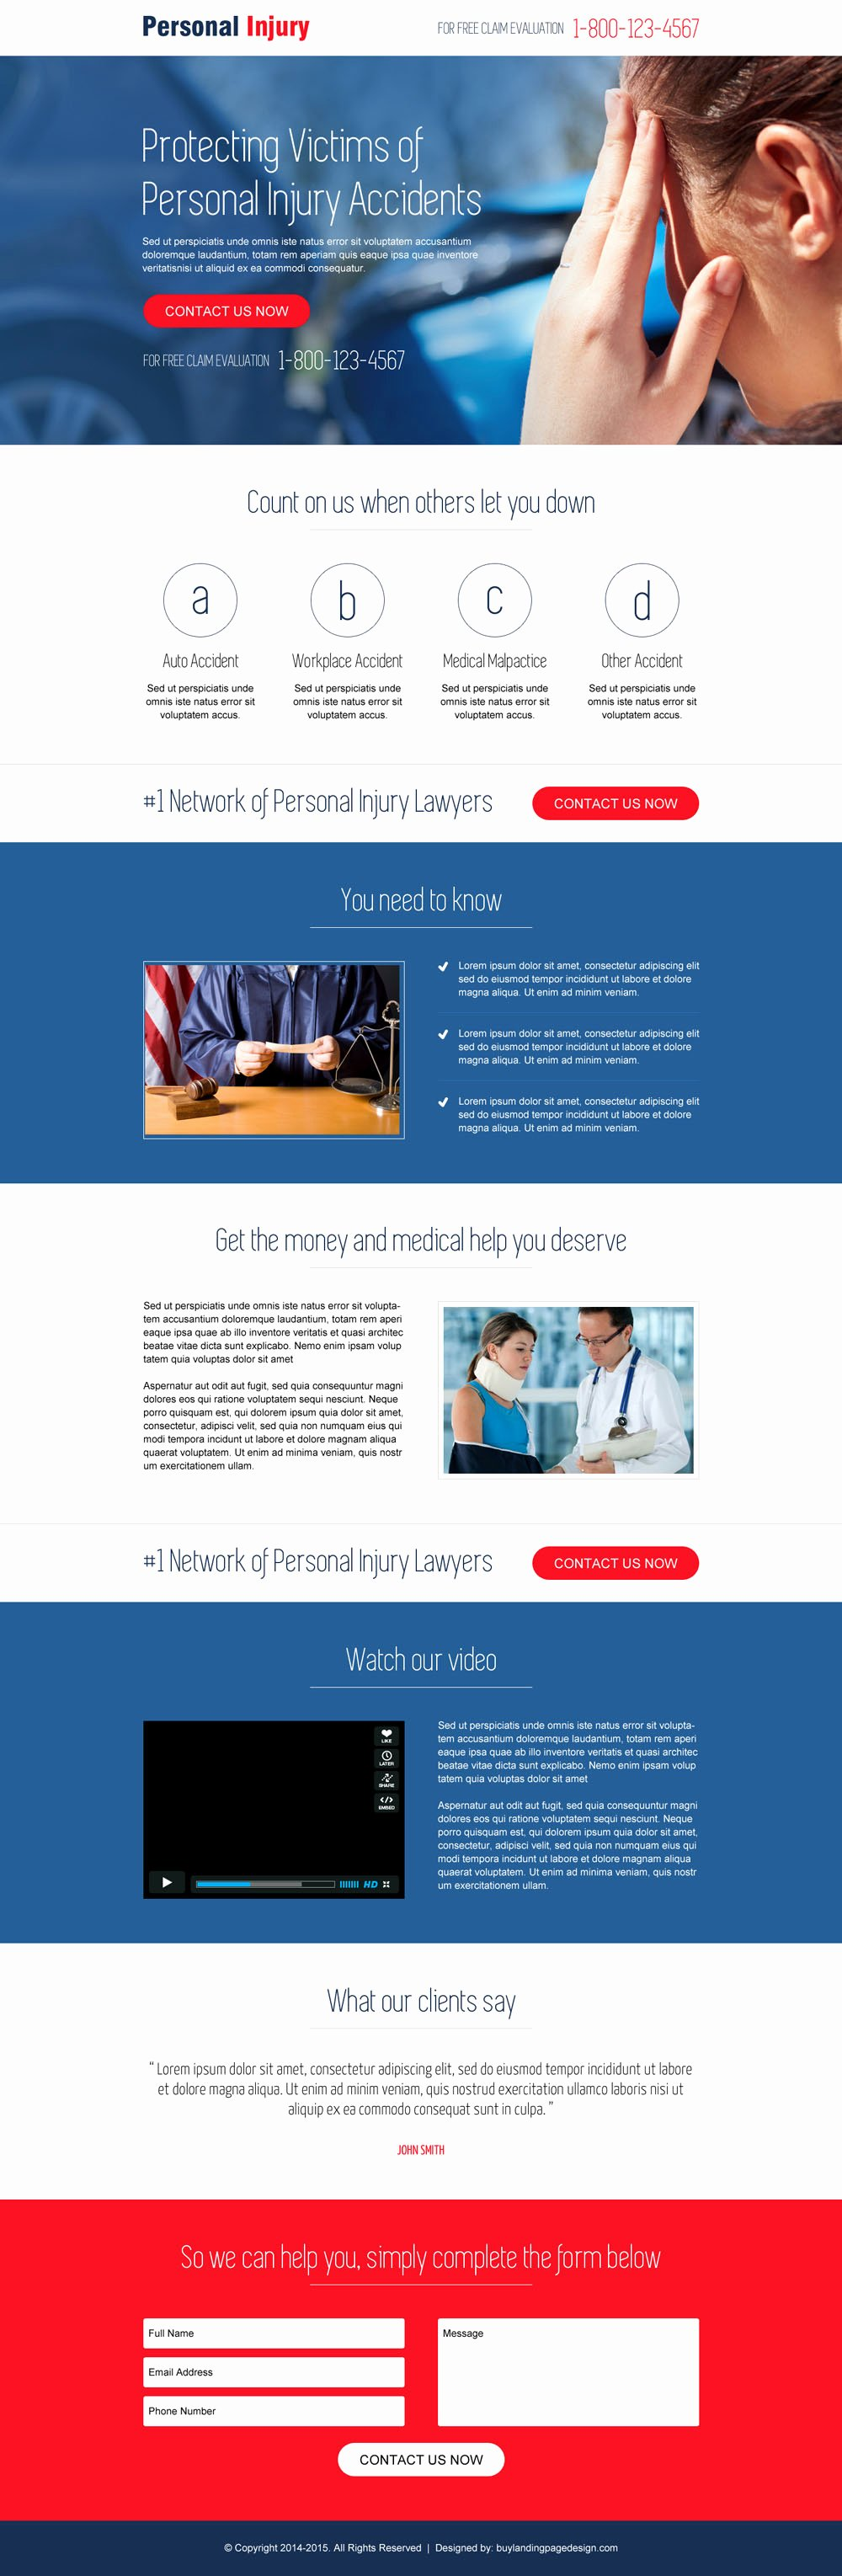 Personal Injury Res Landing Page 001